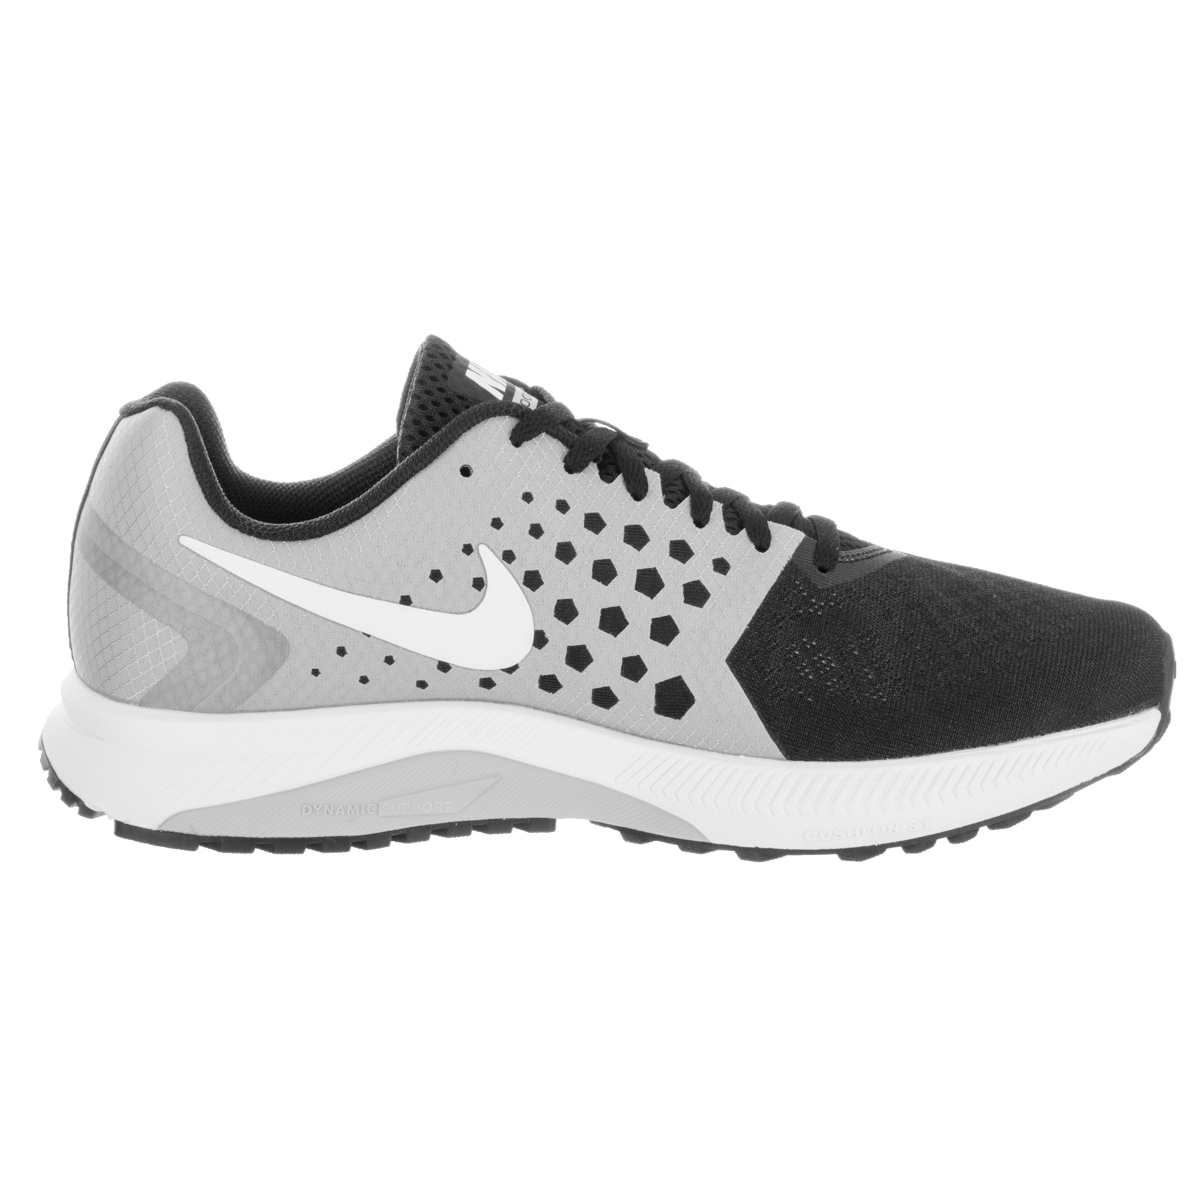 ... White entire collection  0168c 425d0 Nike Mens Zoom Span Black Running  Shoes - Free Shipping Today - Overstock ... f2cb2b1f15a5